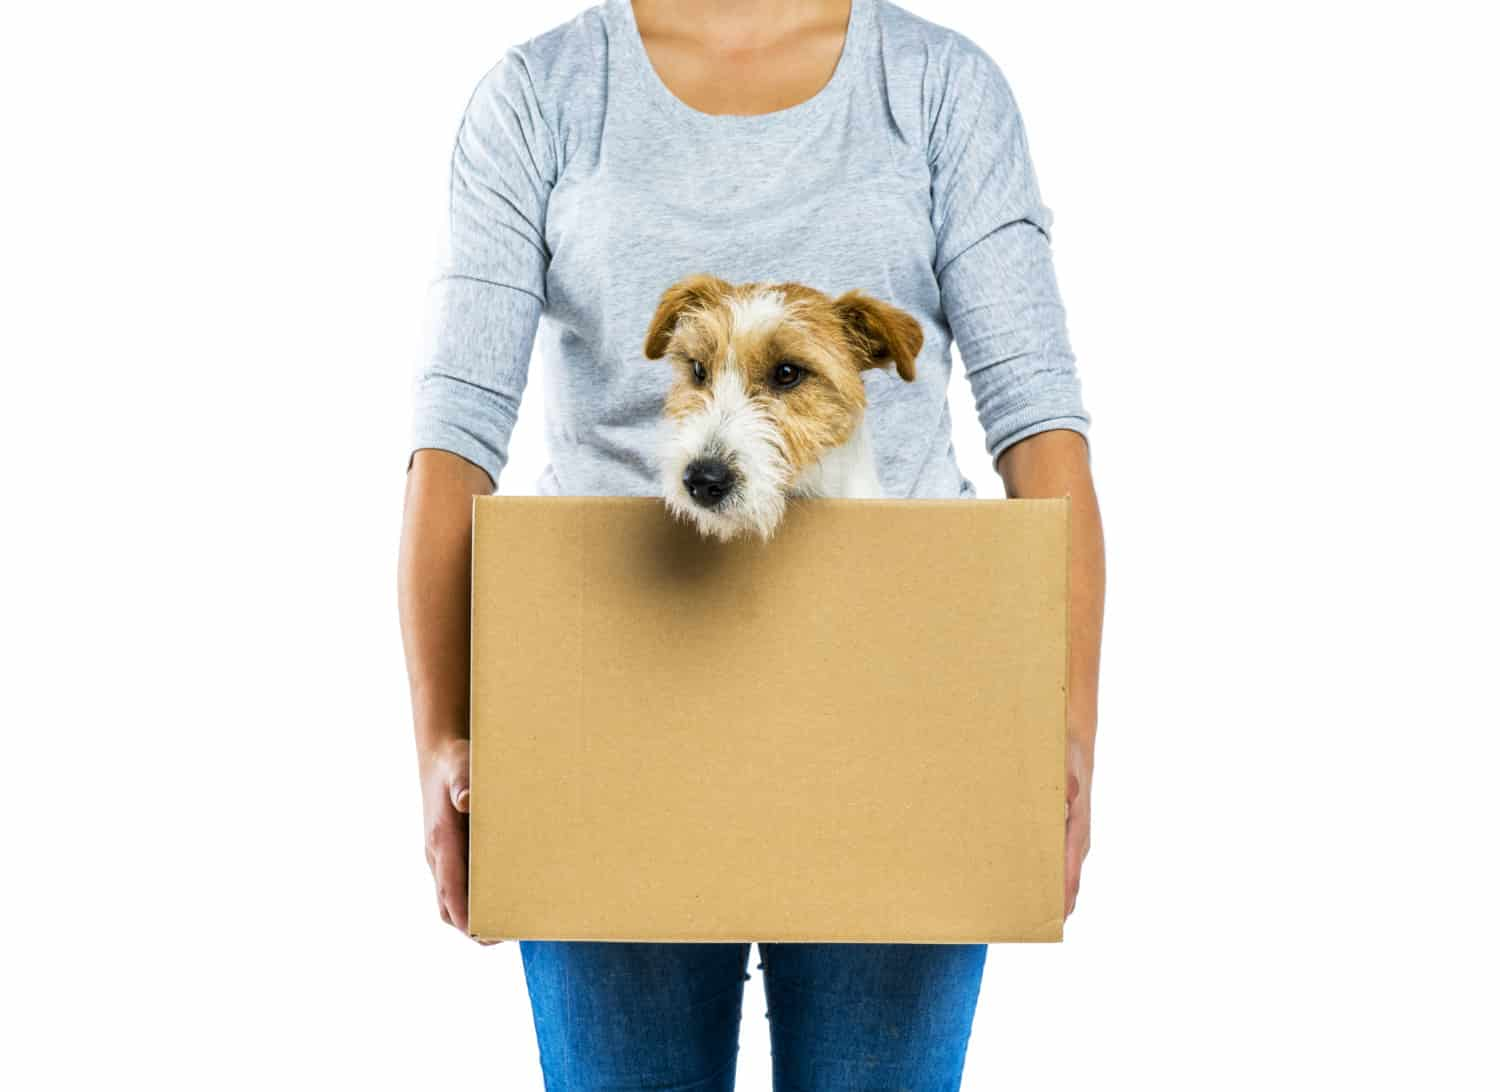 Woman holding a box with a cute terrier dog in it